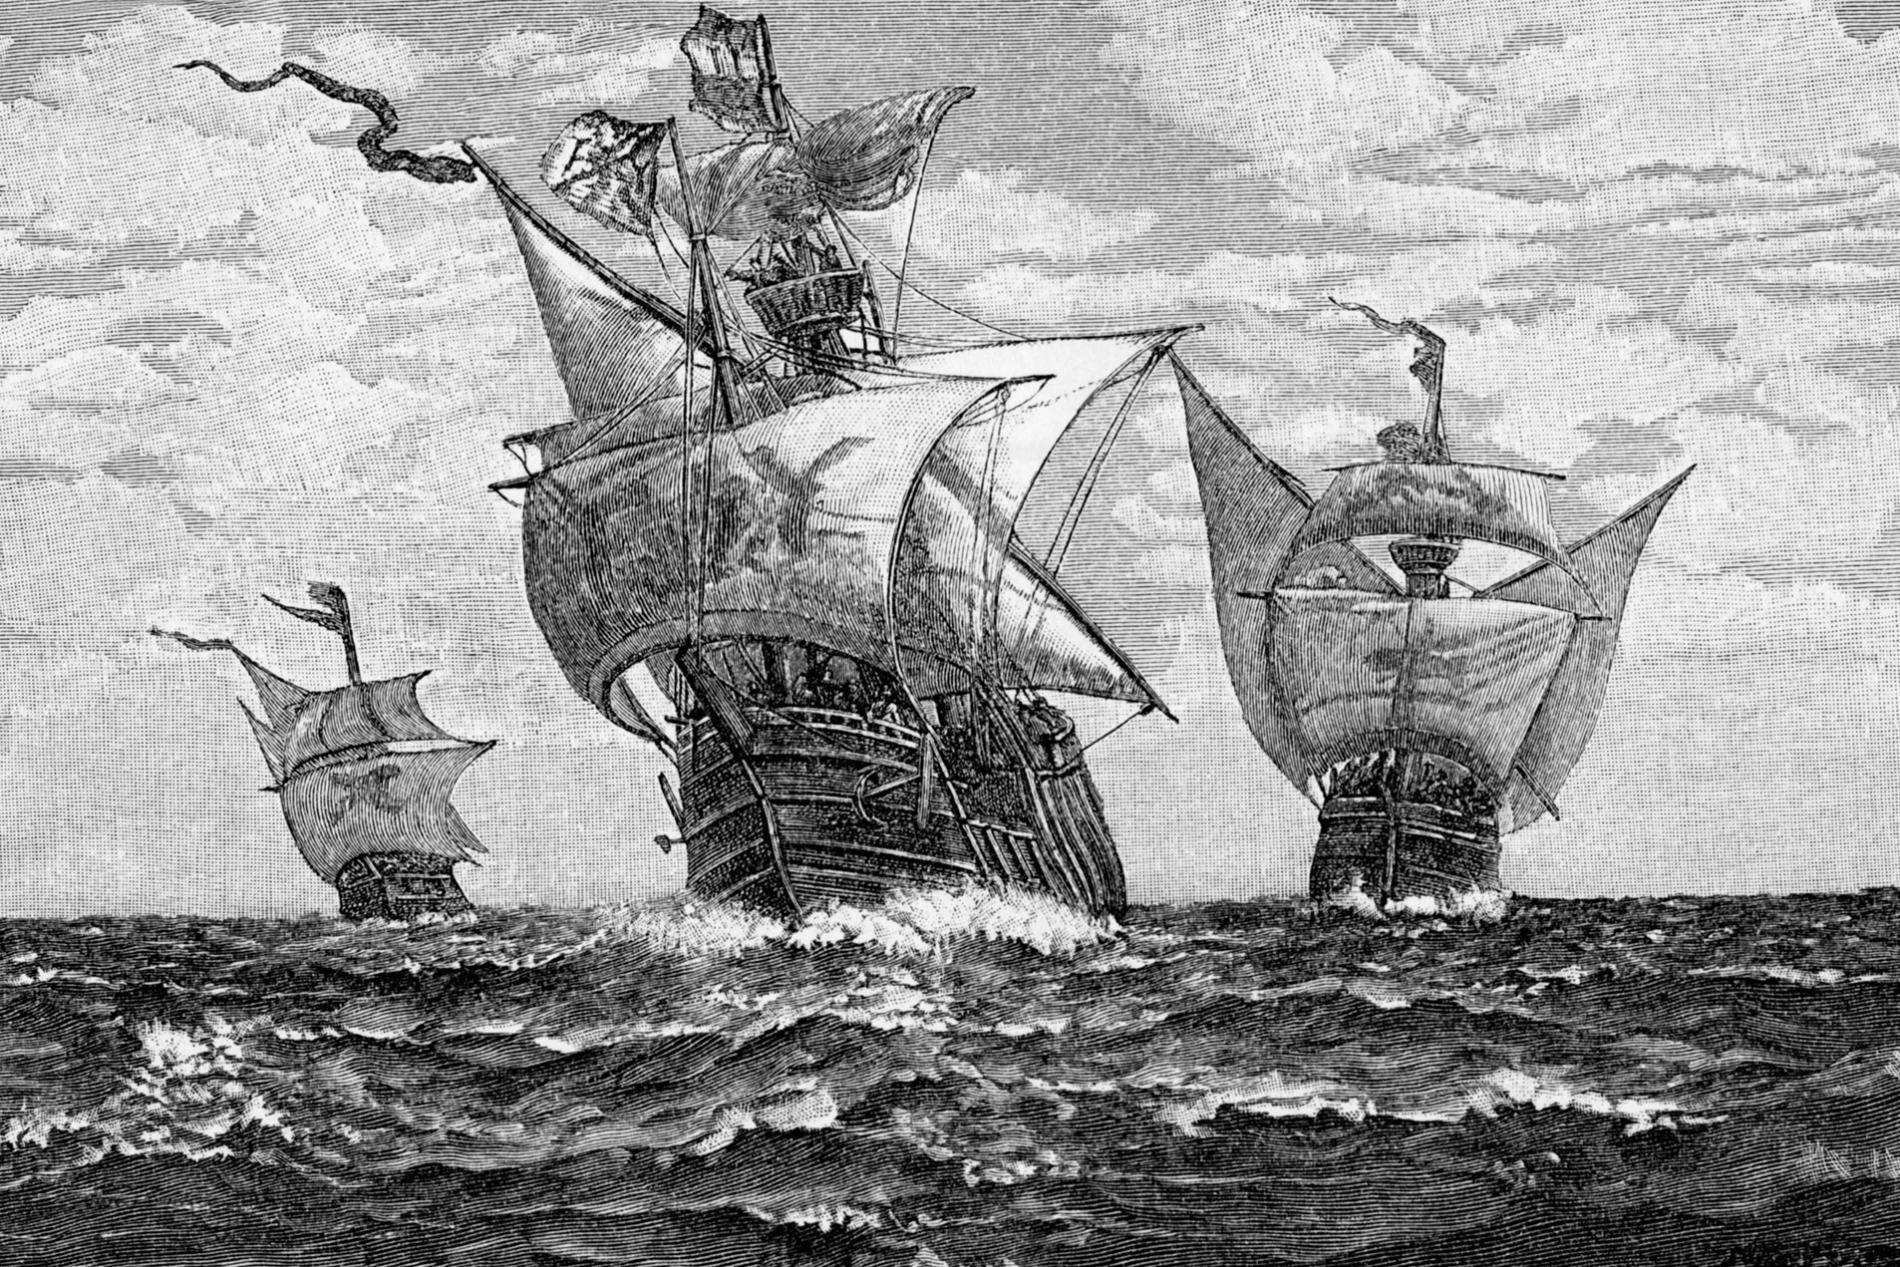 columbus ship GettyImages 517331824